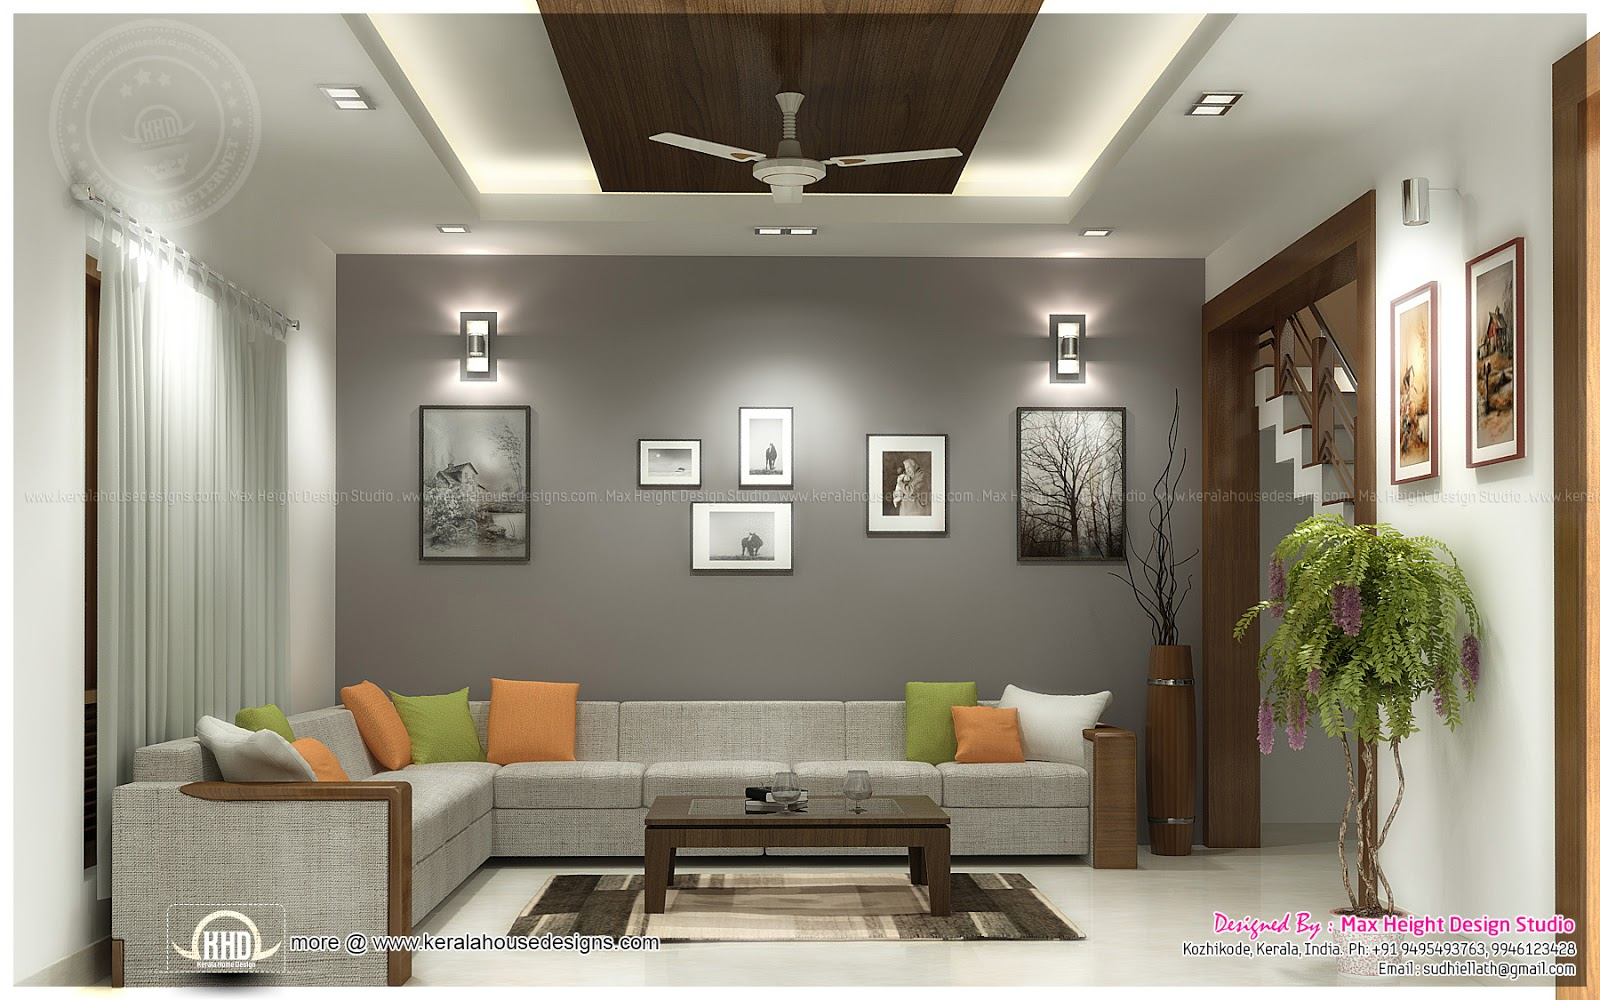 Beautiful interior ideas for home kerala home design and for Home interior design photo gallery